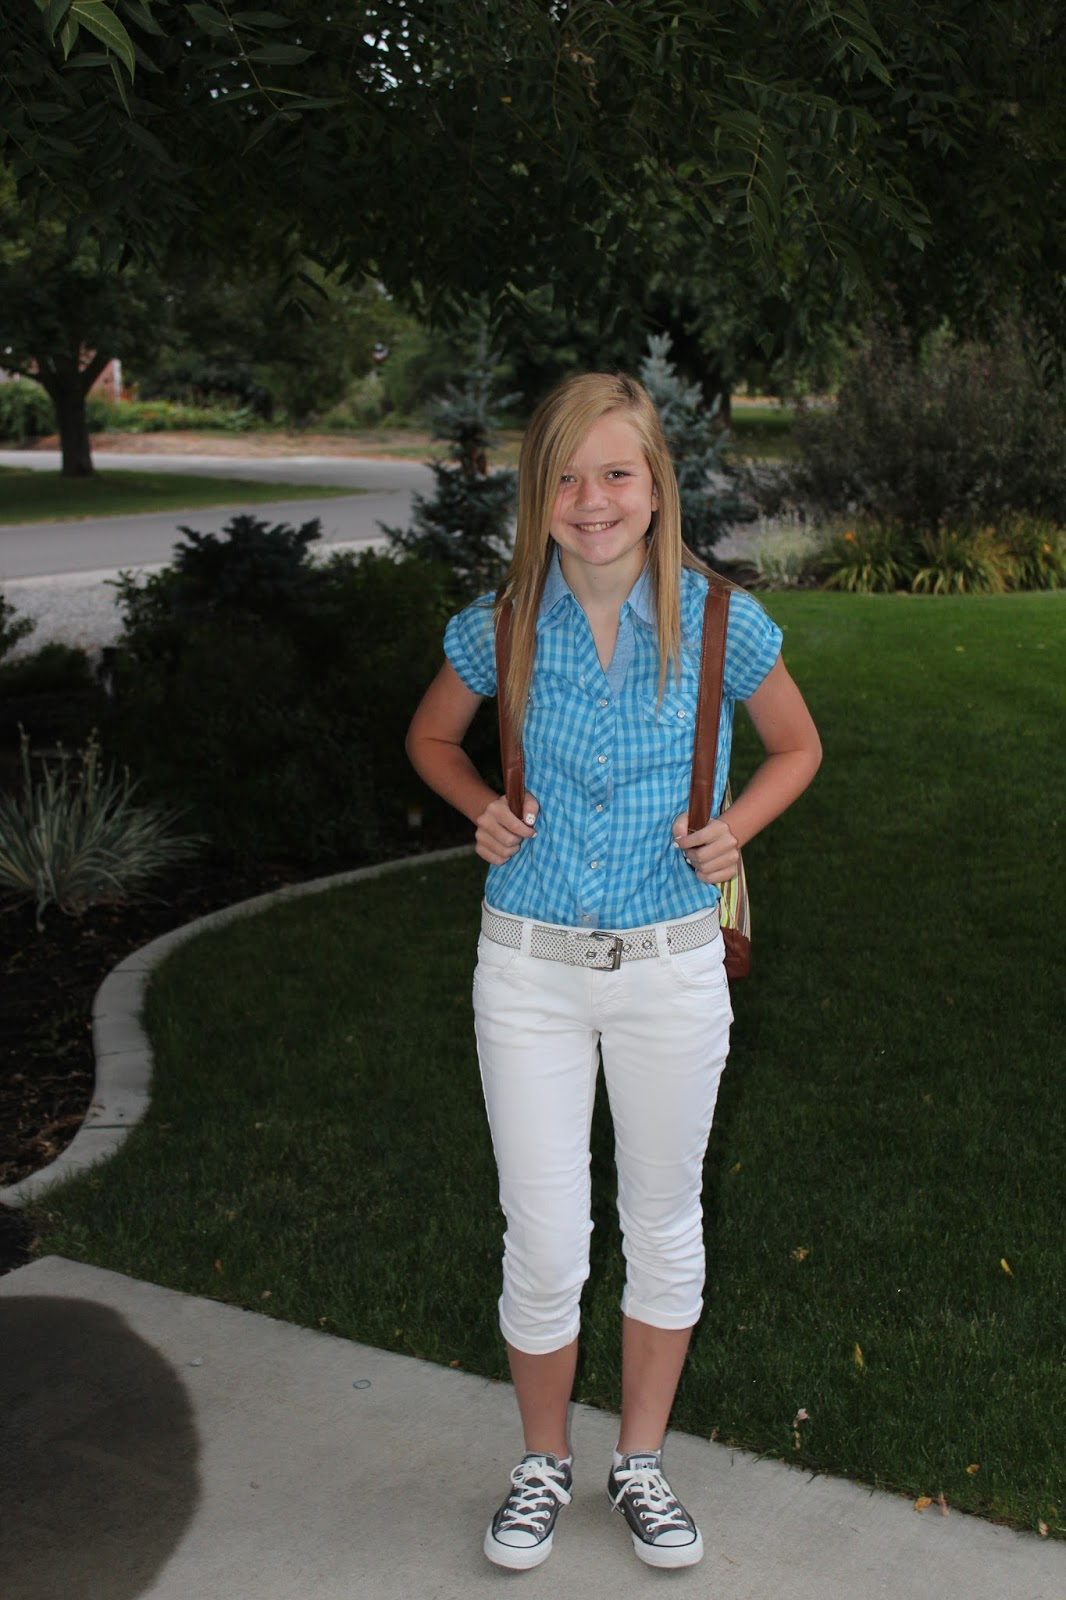 First Day Of School Outfit 8th Grade 2013 Today is her first day of